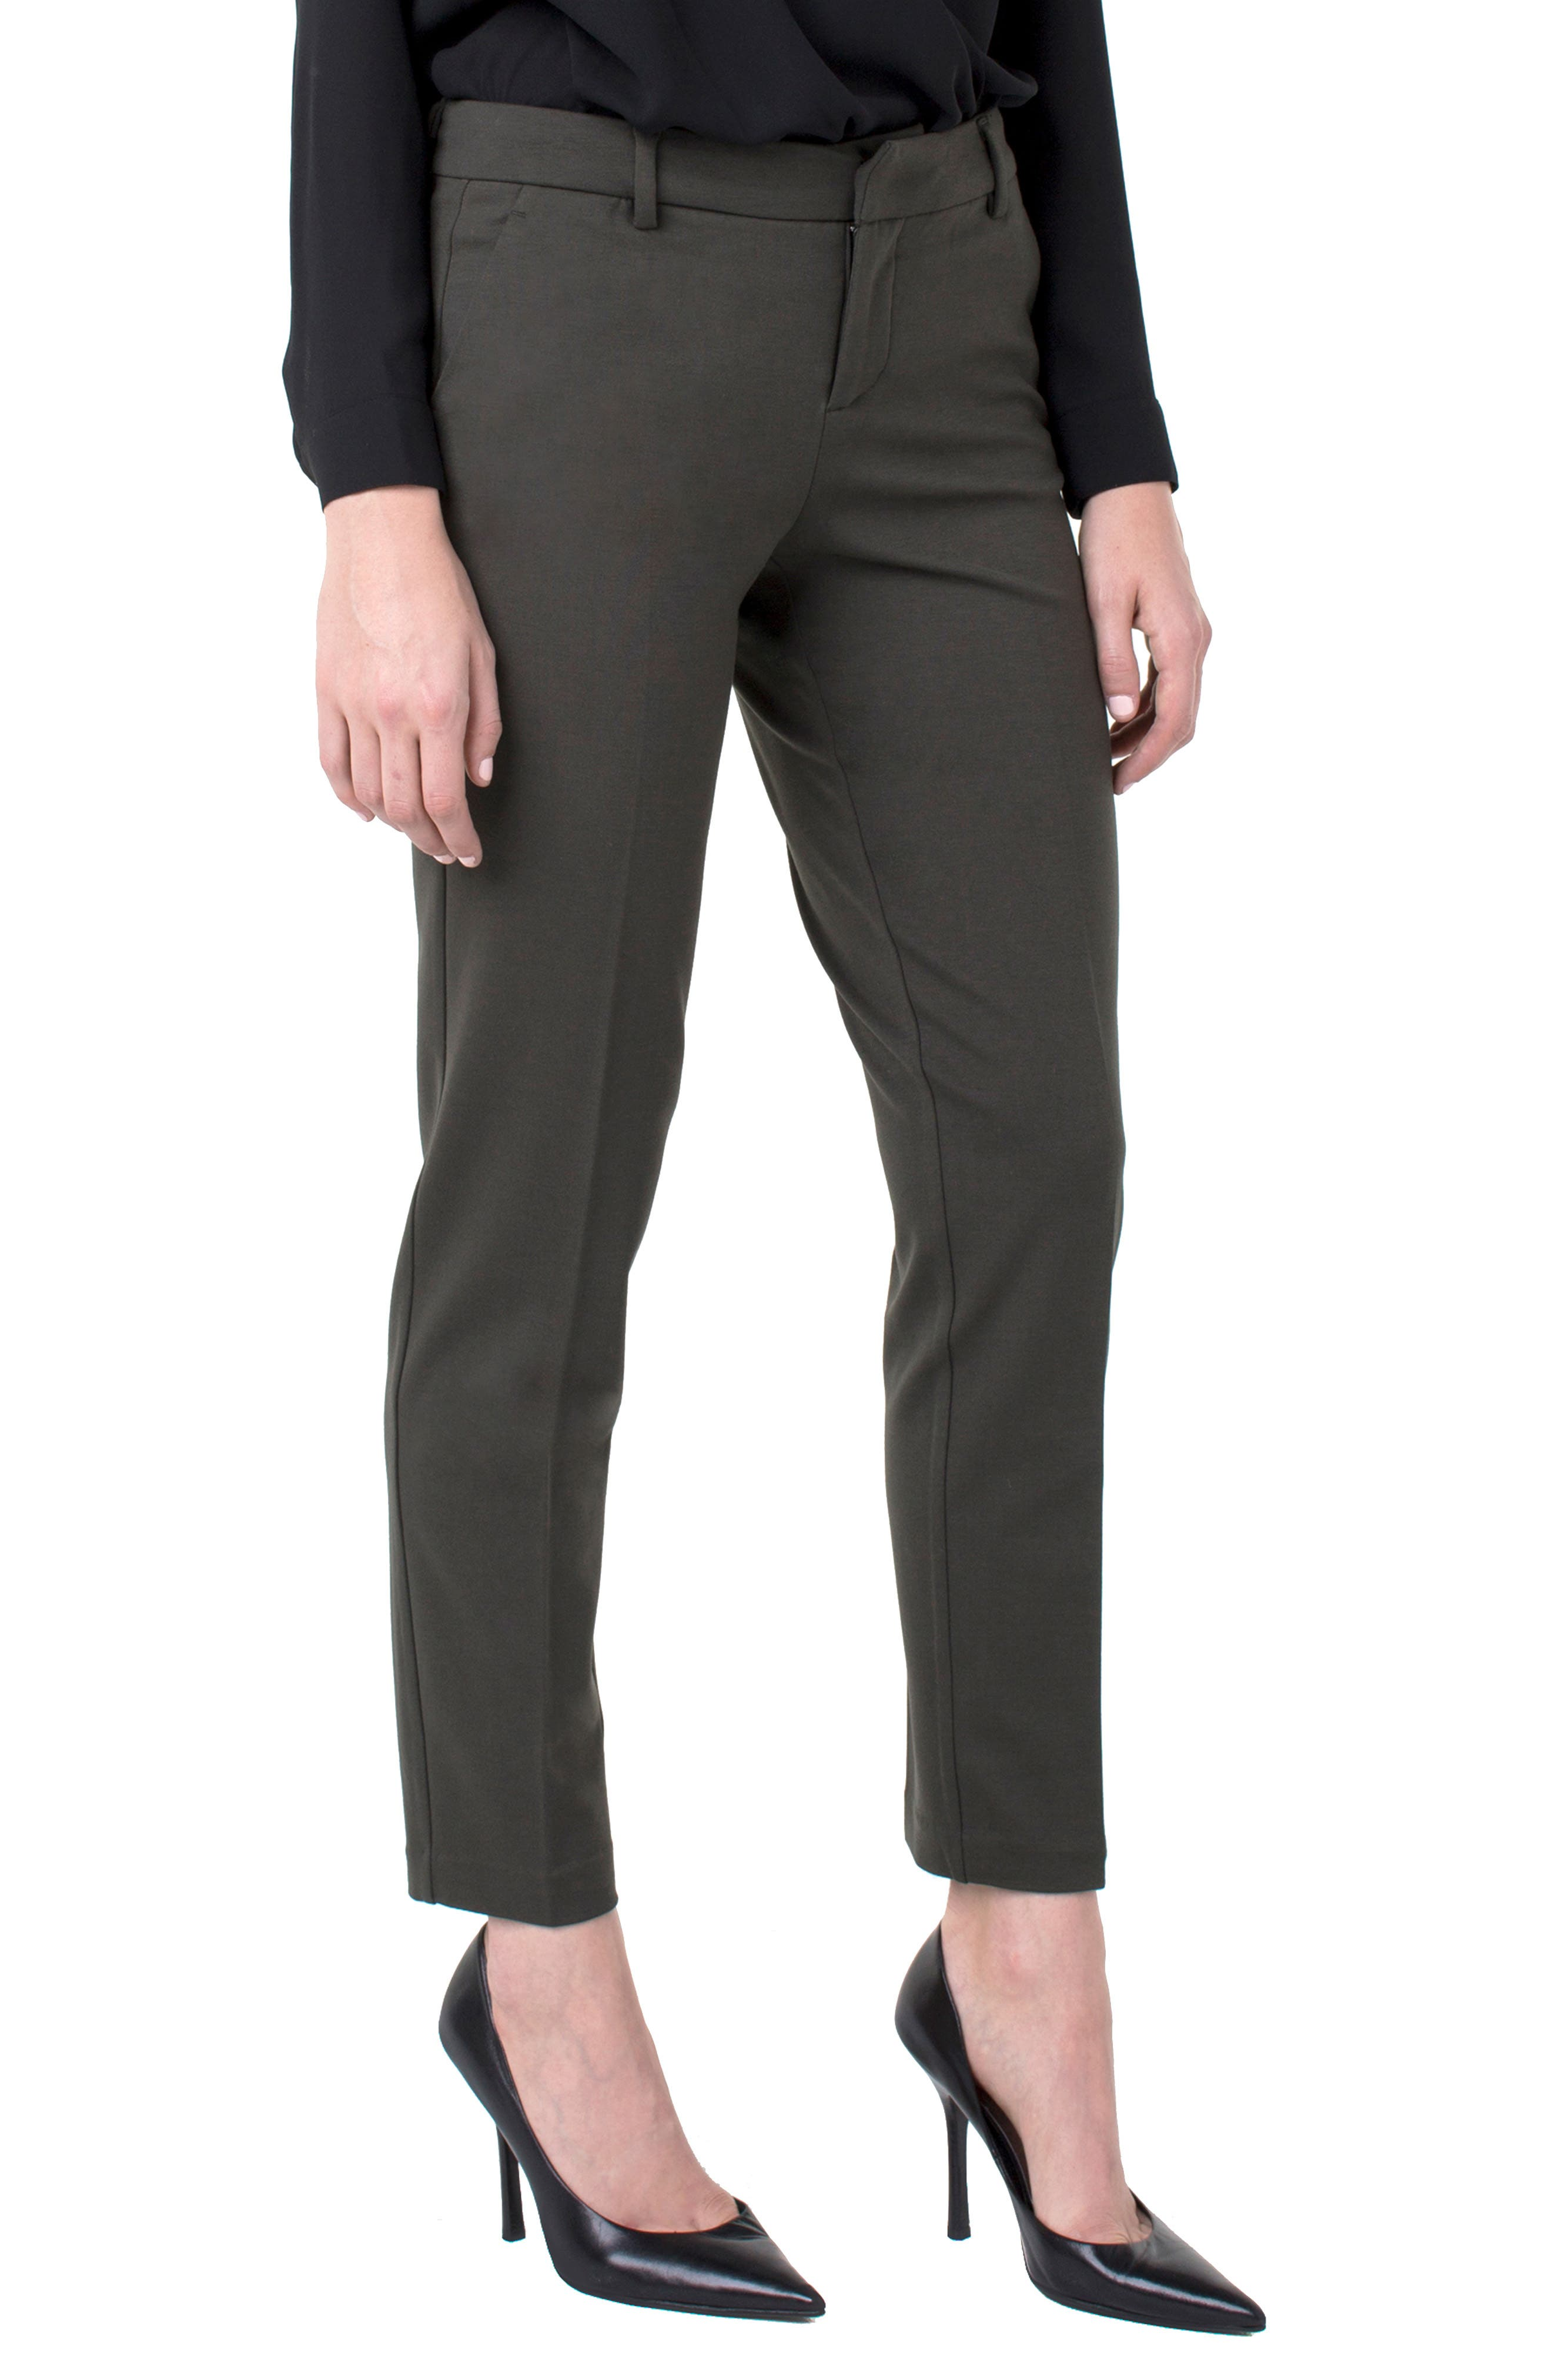 Kelsey Knit Trousers,                         Main,                         color, PEAT GREEN